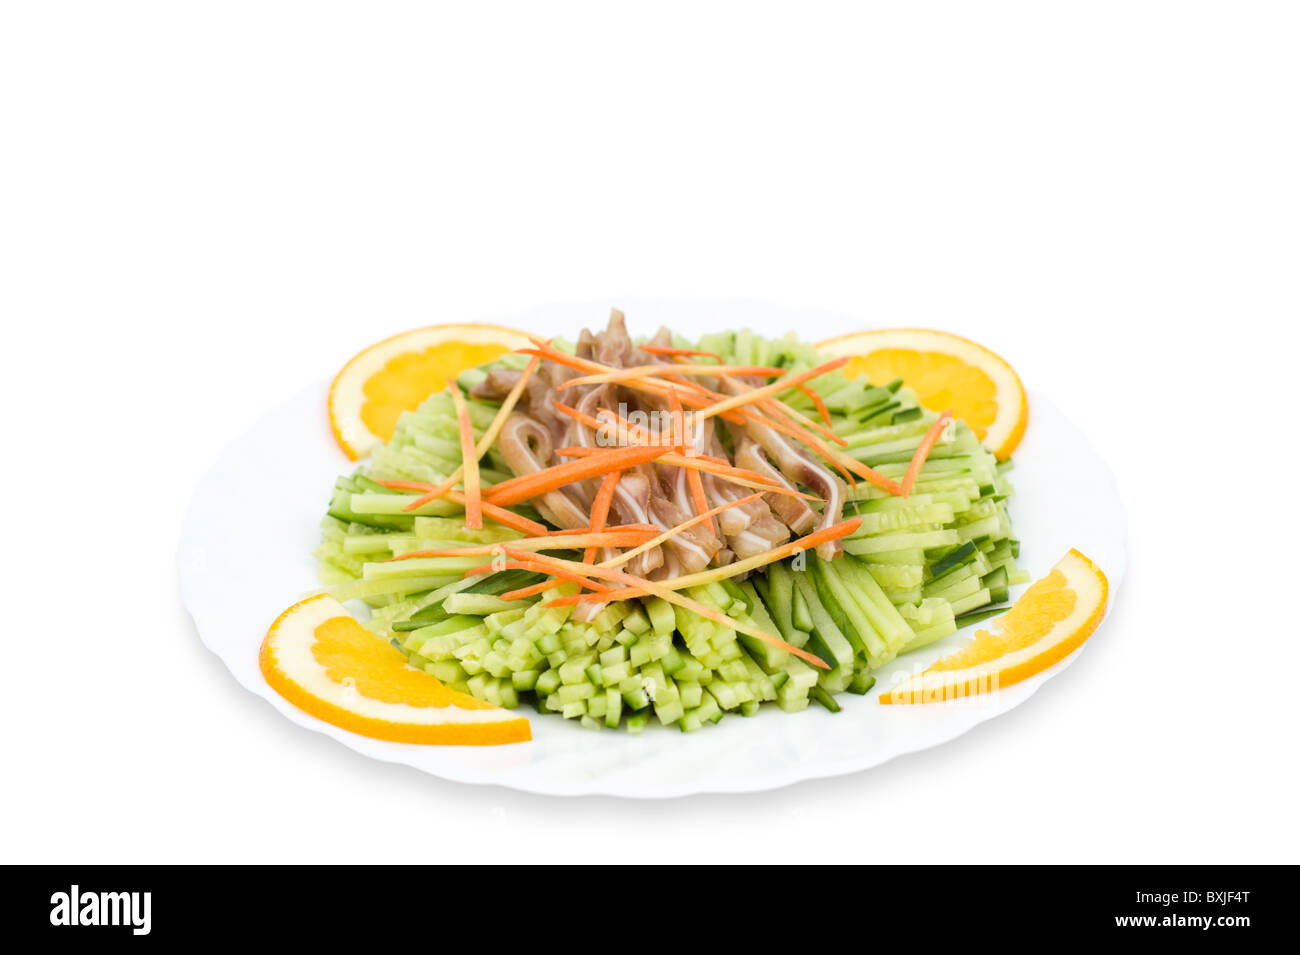 Chinese Food Shredded Cucumbers Meat And Carrots Decorated With